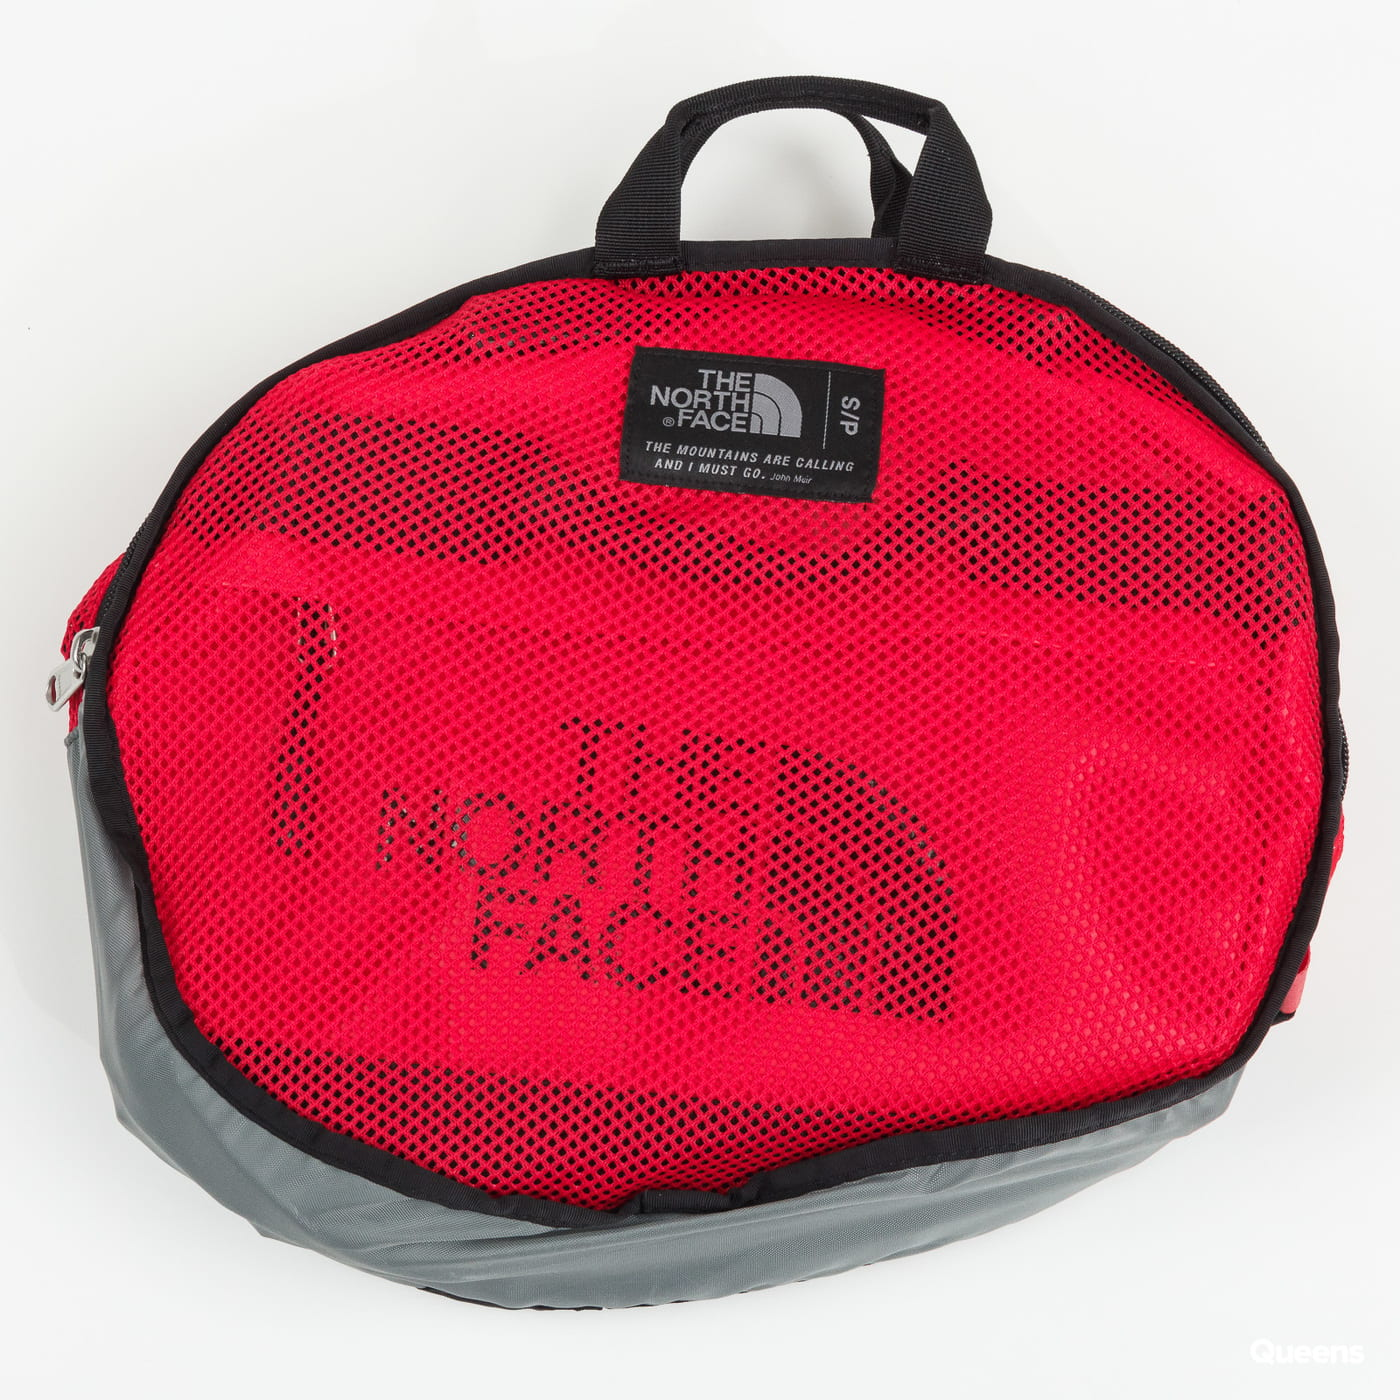 The North Face Base Camp Duffel - S red / black